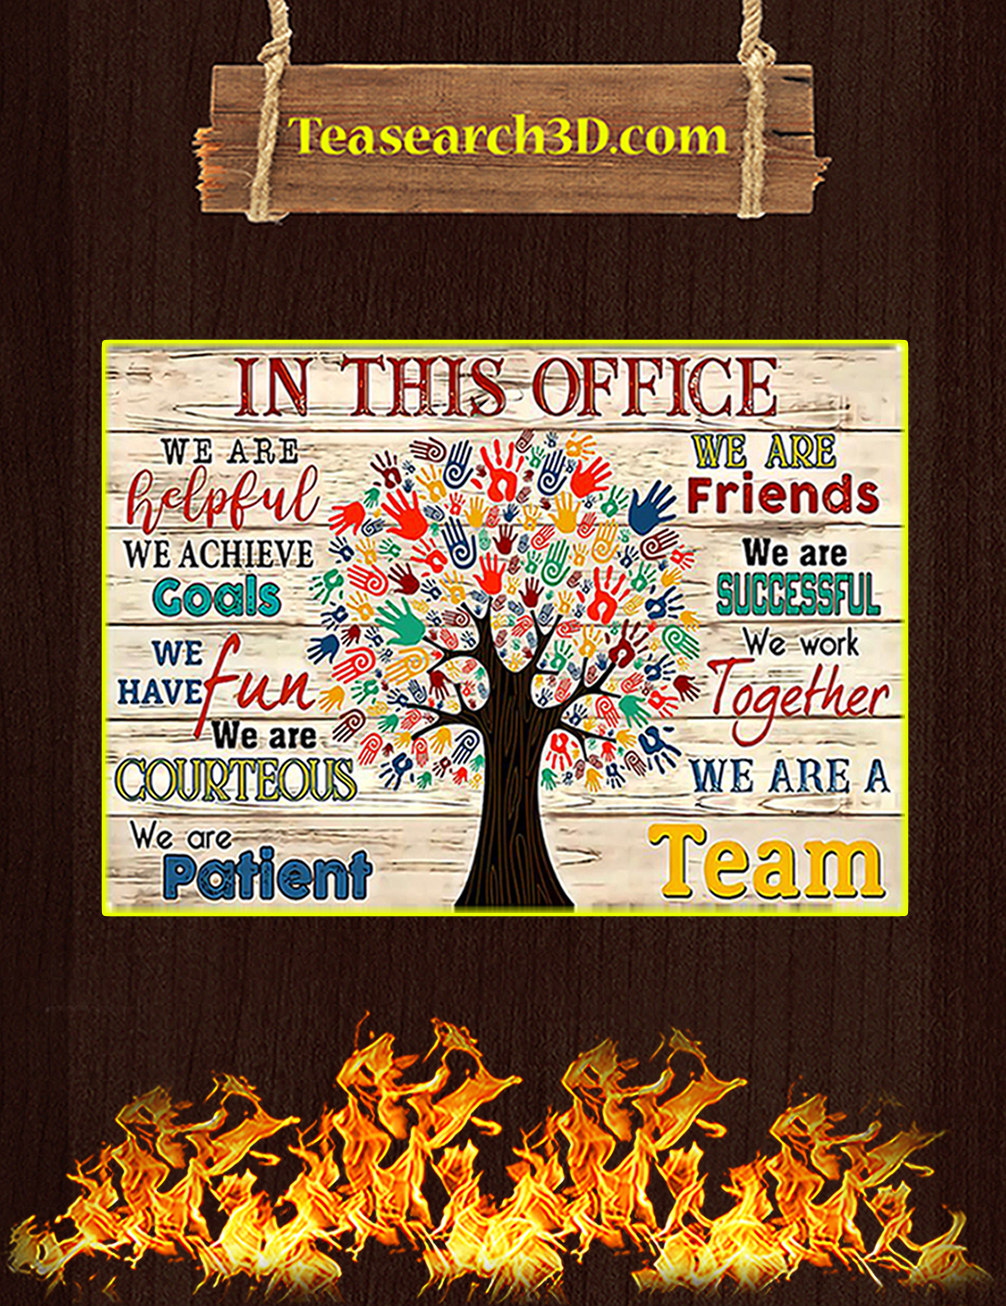 In this office social worker tree poster